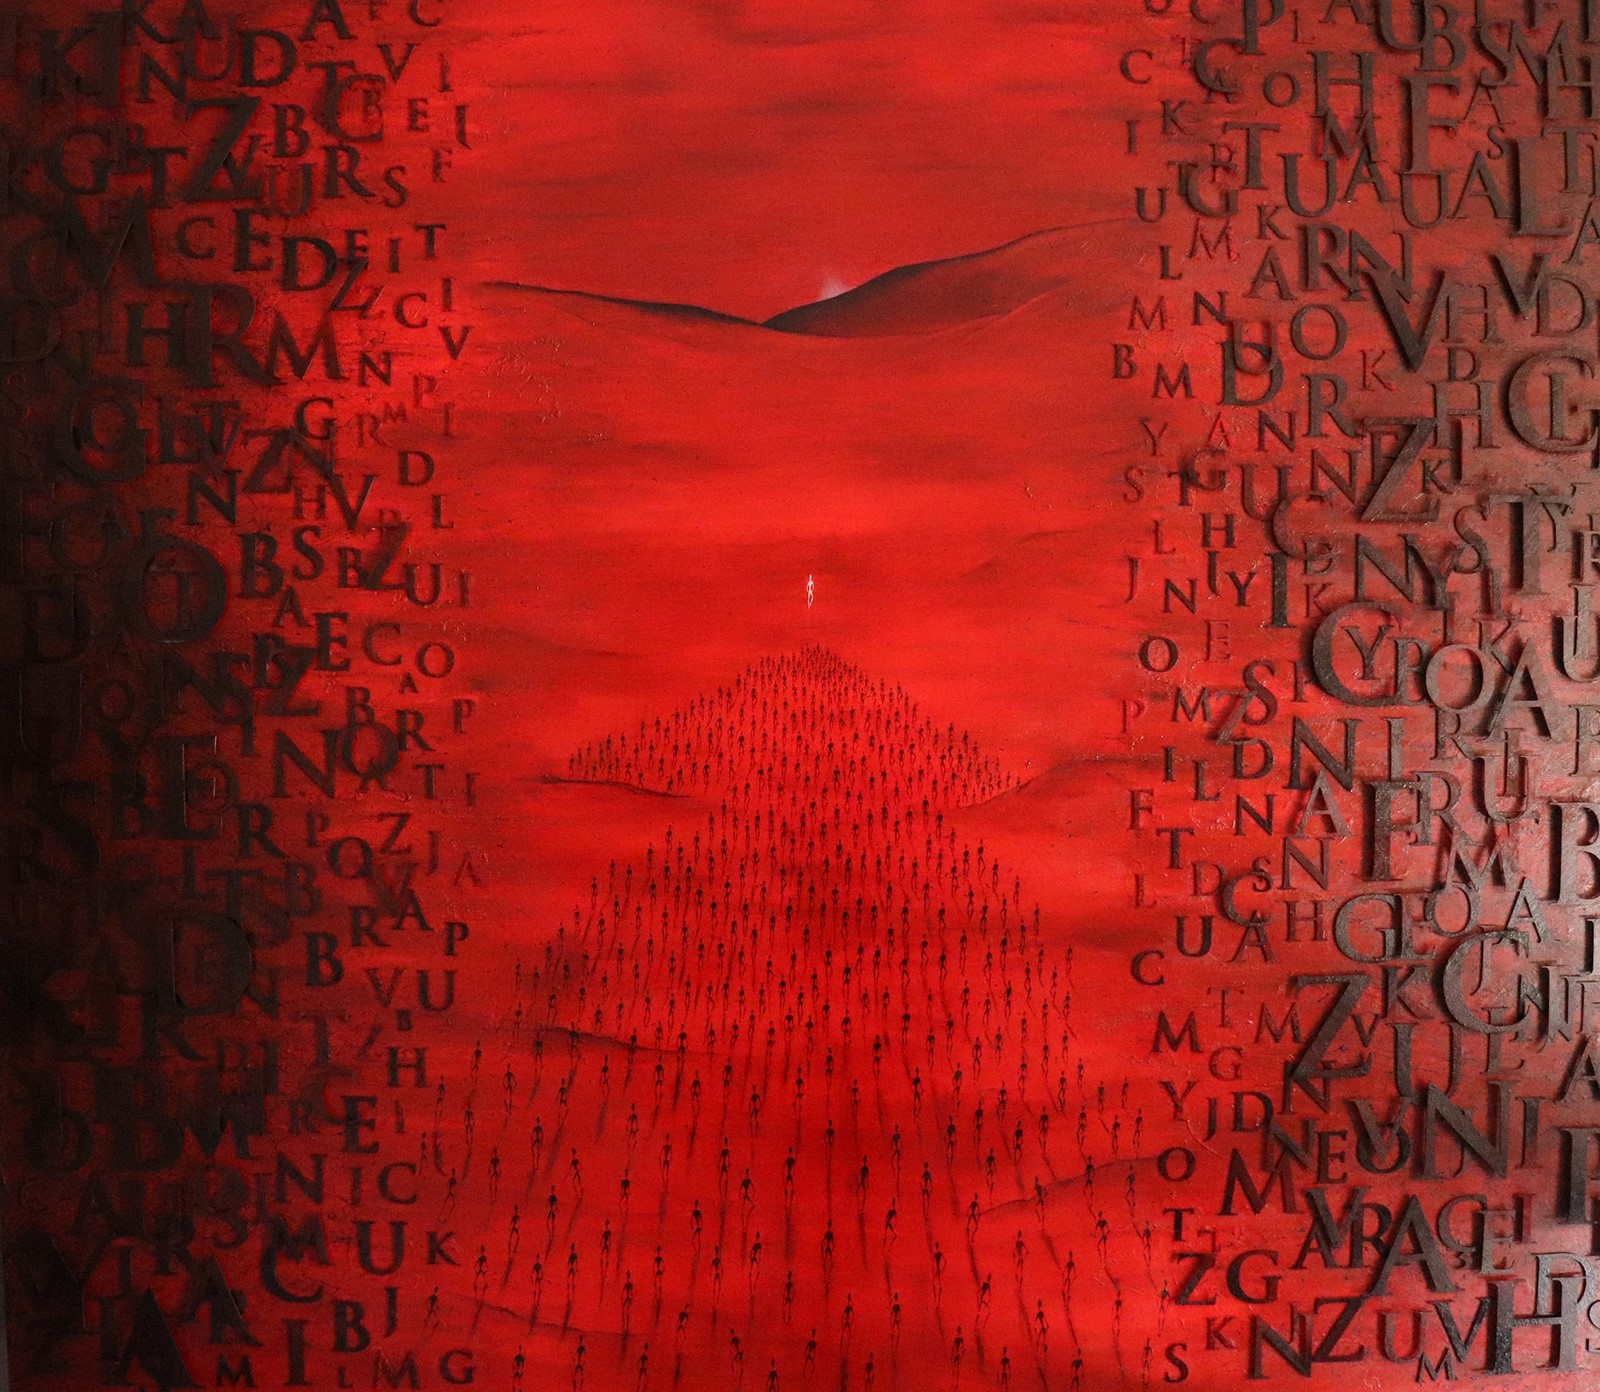 "<p>'TUVA', Tuval Üzeri Yağlıboya - Yerleştirme, 140x160 cm, 2020.<br /><em><span lang='EN-US'>""TUVA"", </span><span lang='EN-US'>Oil Painted on Canvas - Installation 140 x 160 cm, 2020.</span></em></p><p> </p>"